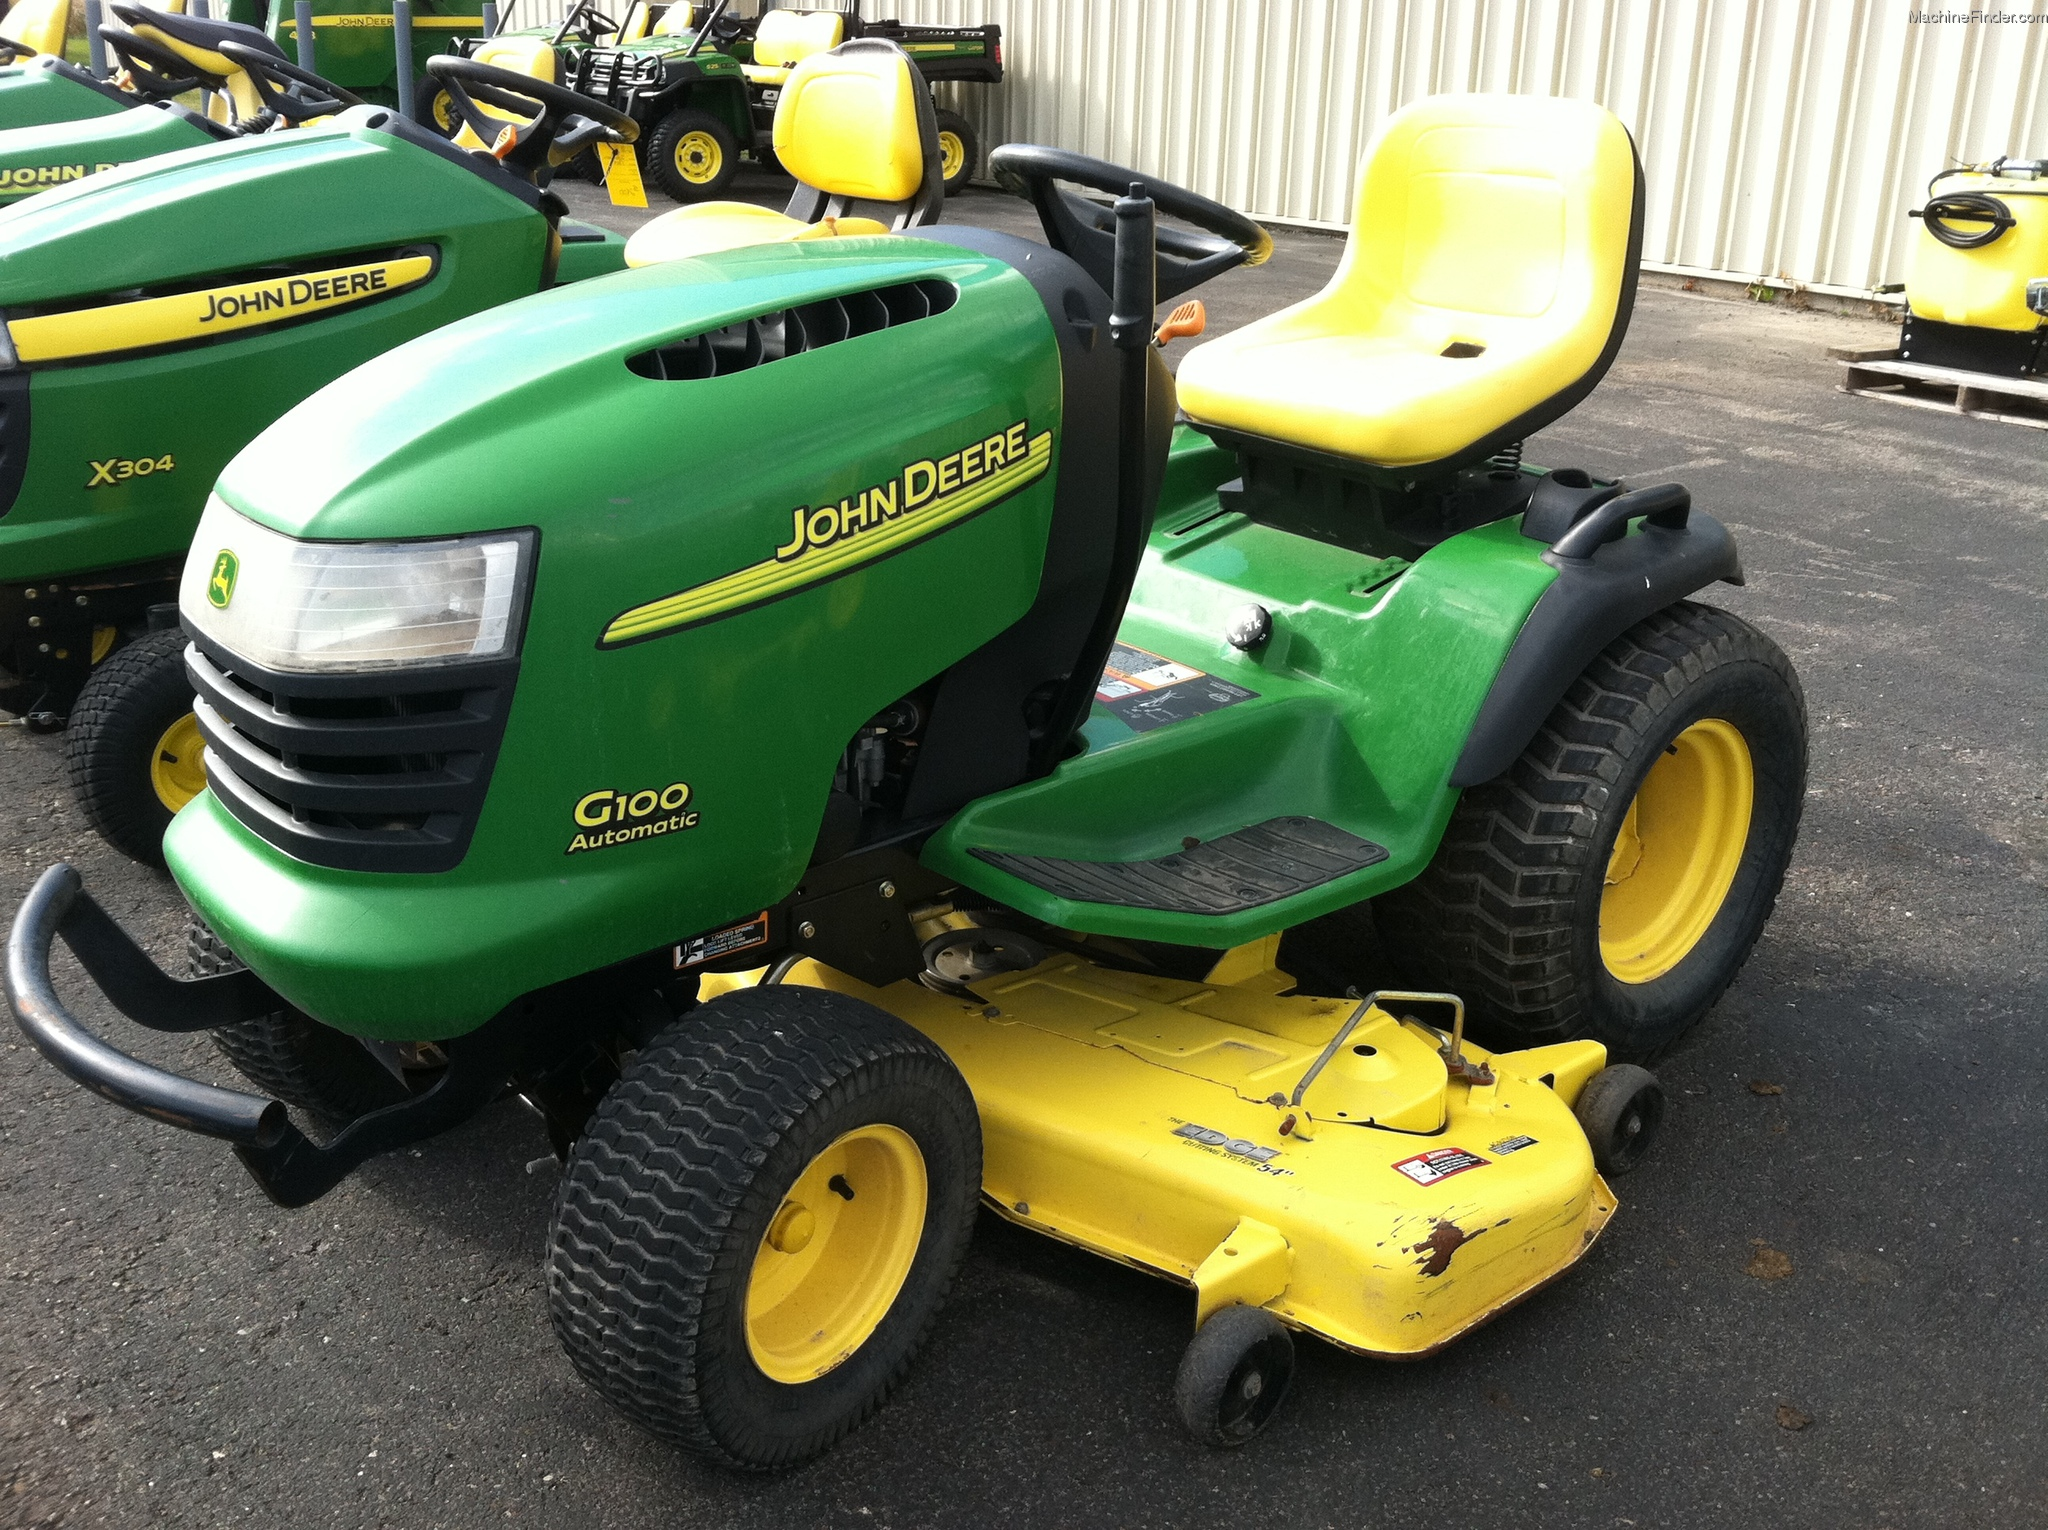 2003 John Deere G100 Lawn & Garden and Commercial Mowing ...